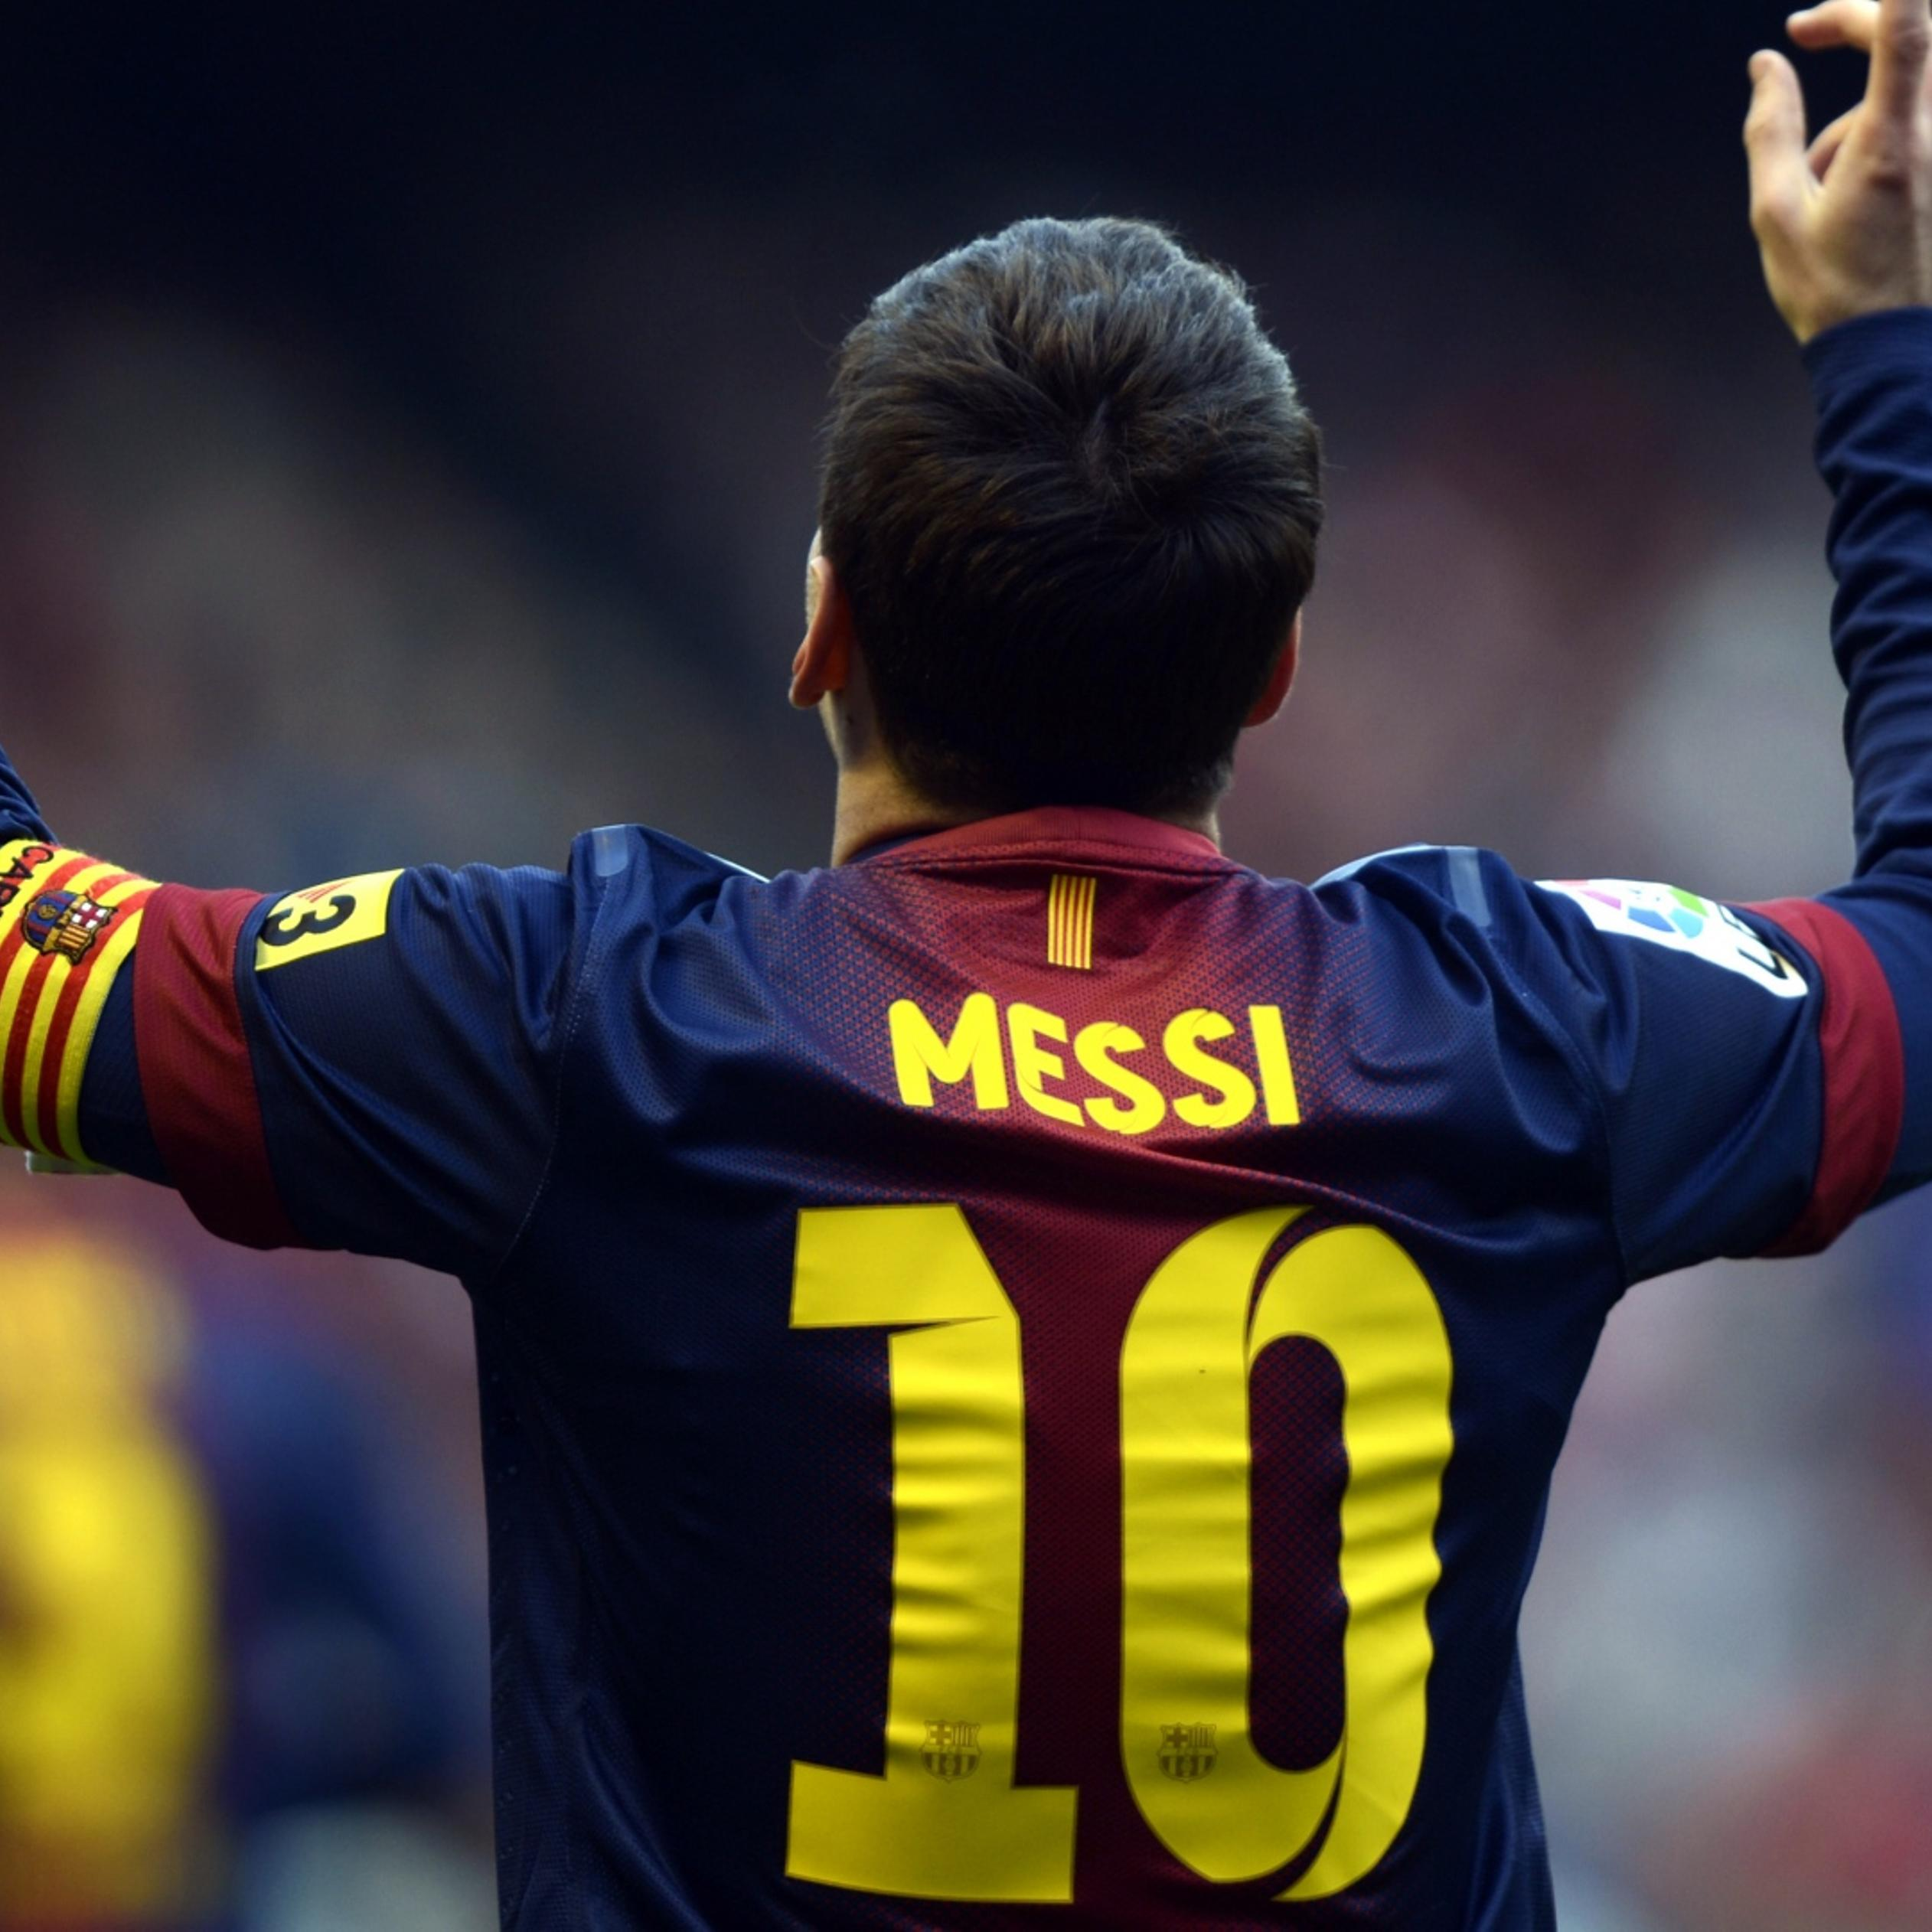 Lionel Messi On The Stadium T Shirt With Number 10 Wallpaper Download 2524x2524